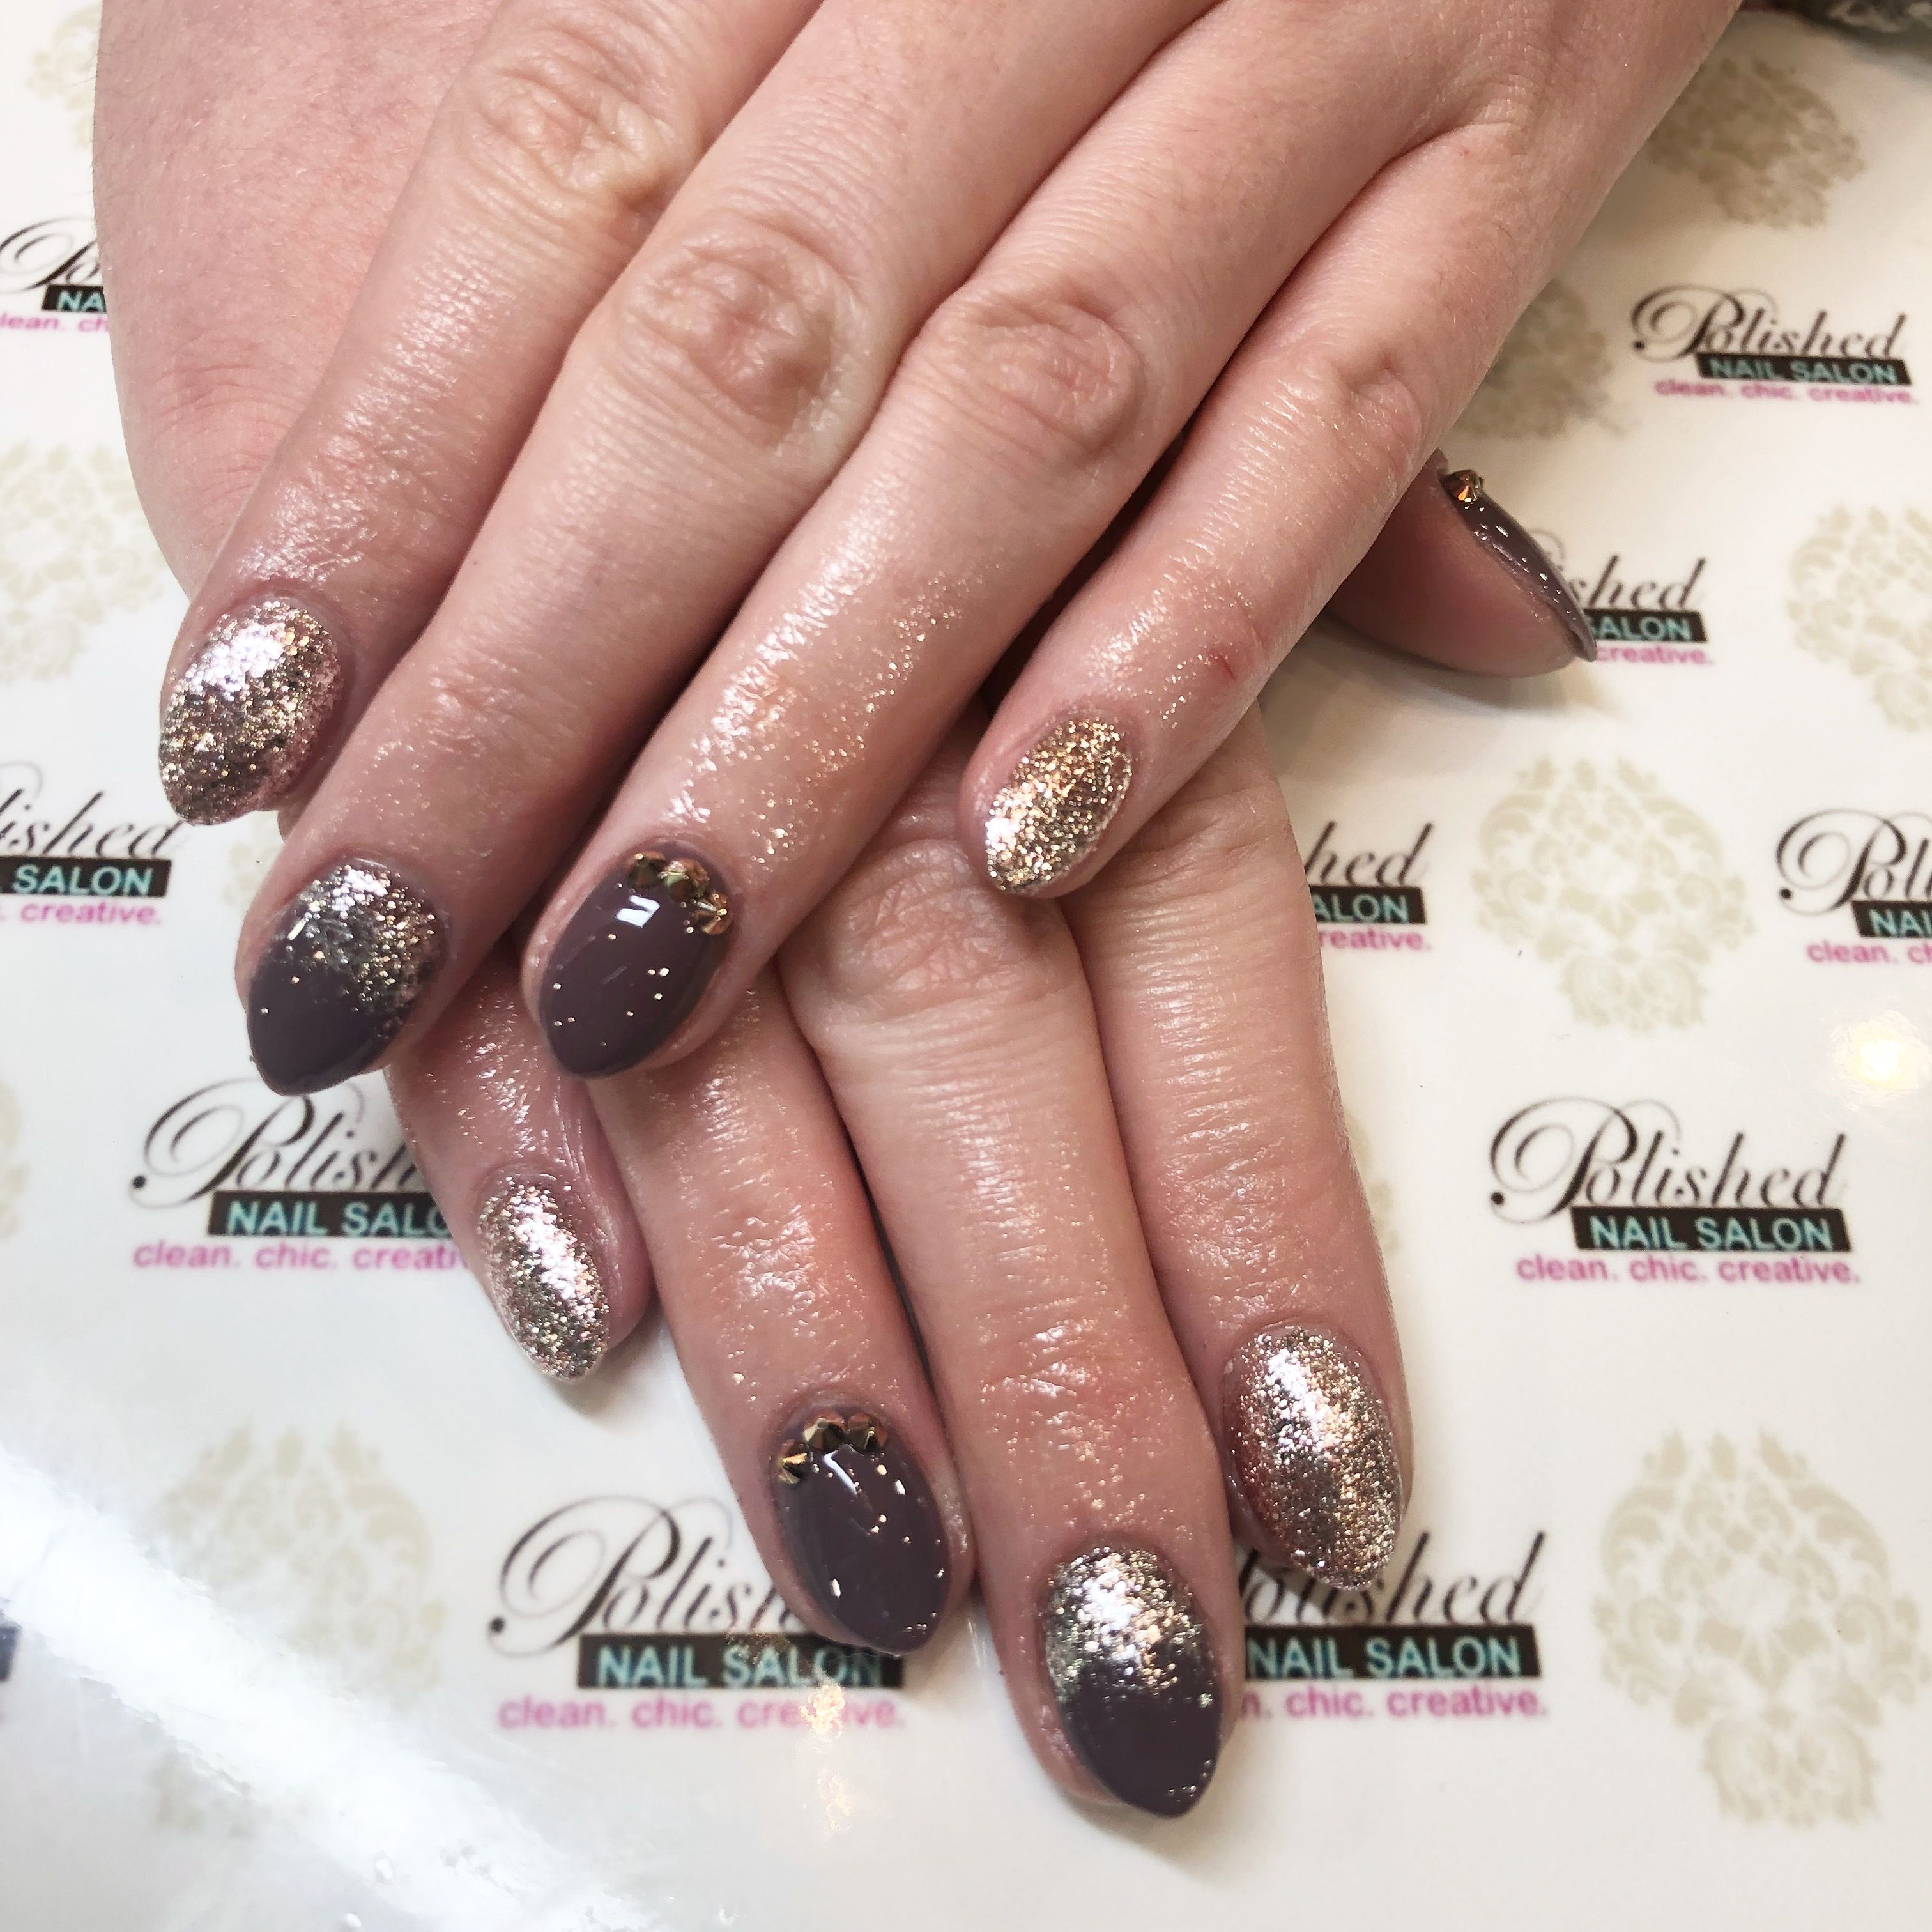 Be chic and sassy with short nails! #bePolished #beYourBest ...